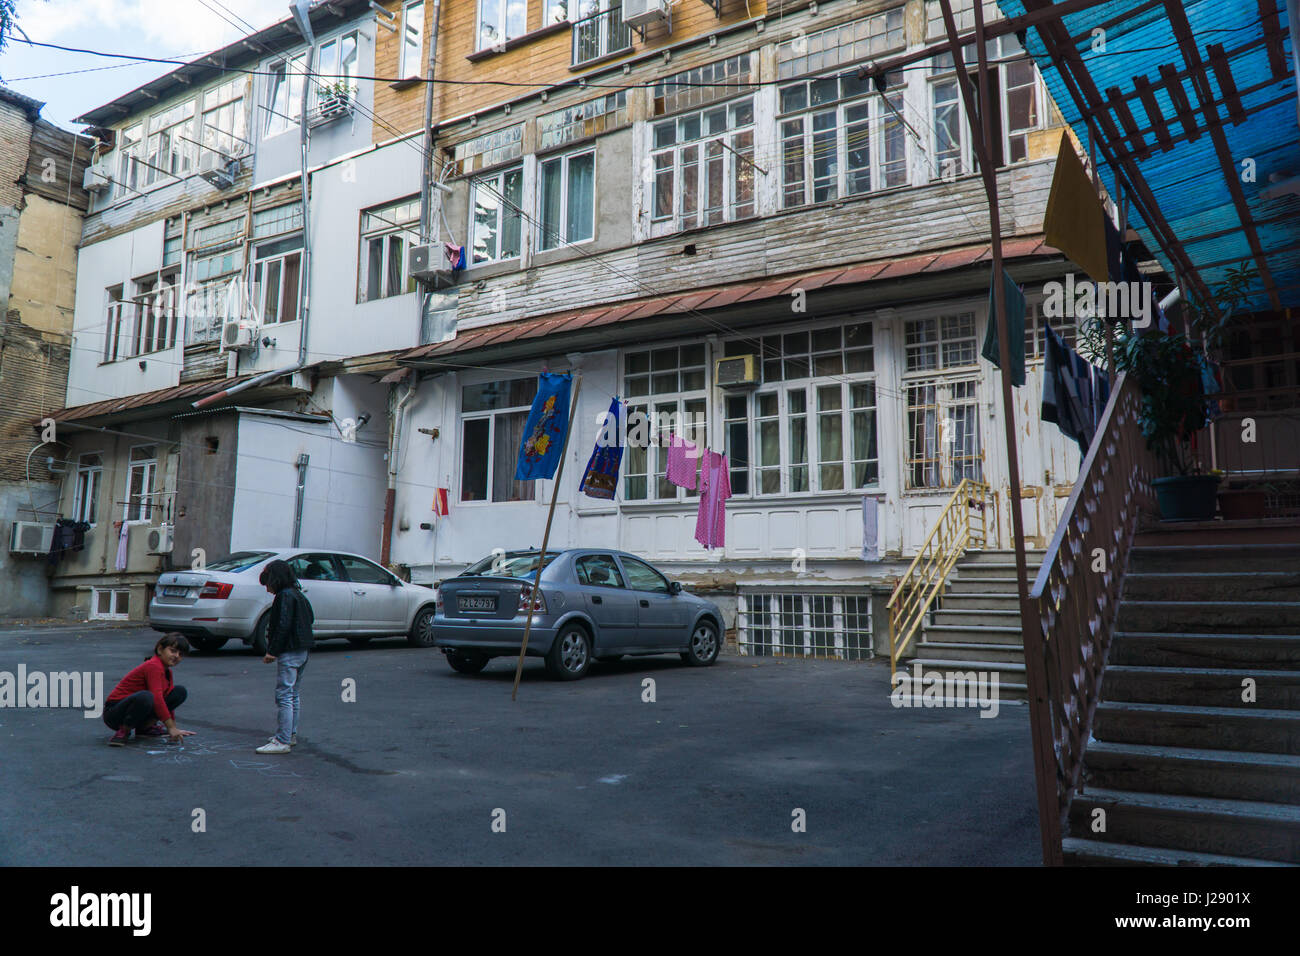 TBILISI, GEORGIA-SEP 25, 2016: Typical courtyard in the heart of the old town. Stock Photo